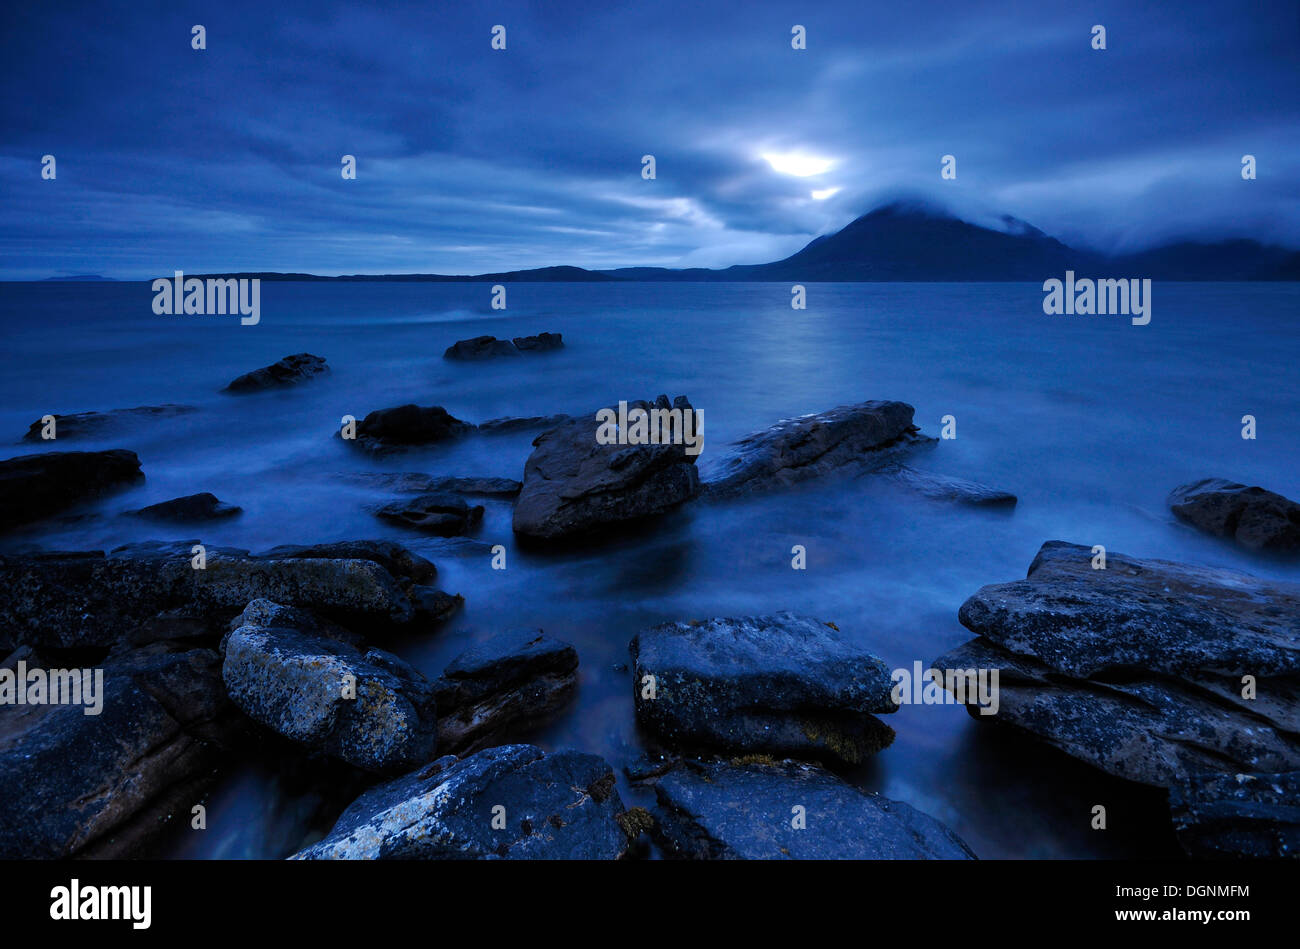 Mountains shrouded with clouds, blue hour on a rocky seashore, Elgol, Isle of Skye, Scotland, United Kingdom - Stock Image